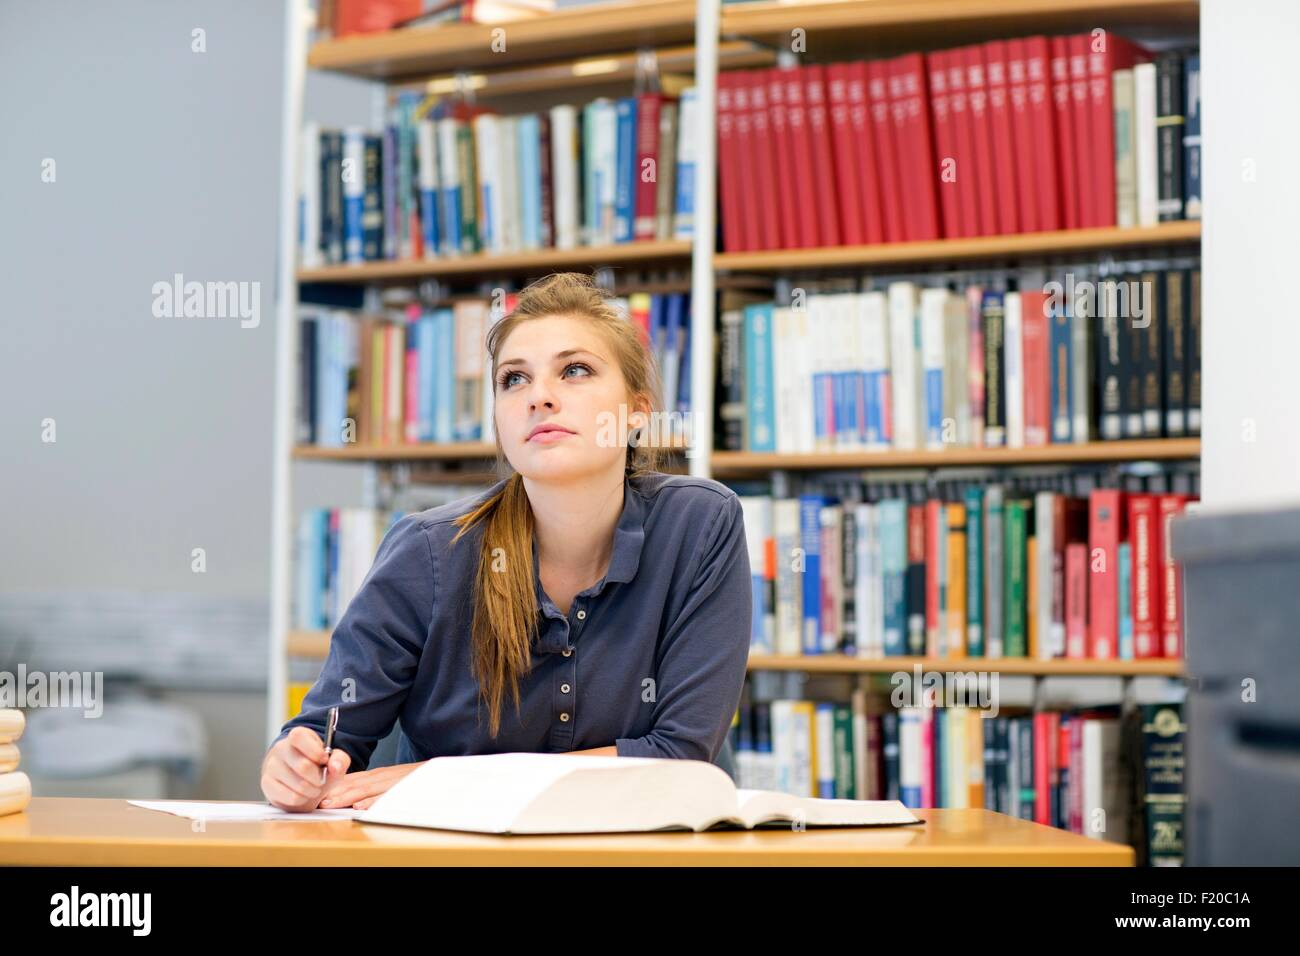 Young female student reading textbook gazing up from library desk - Stock Image